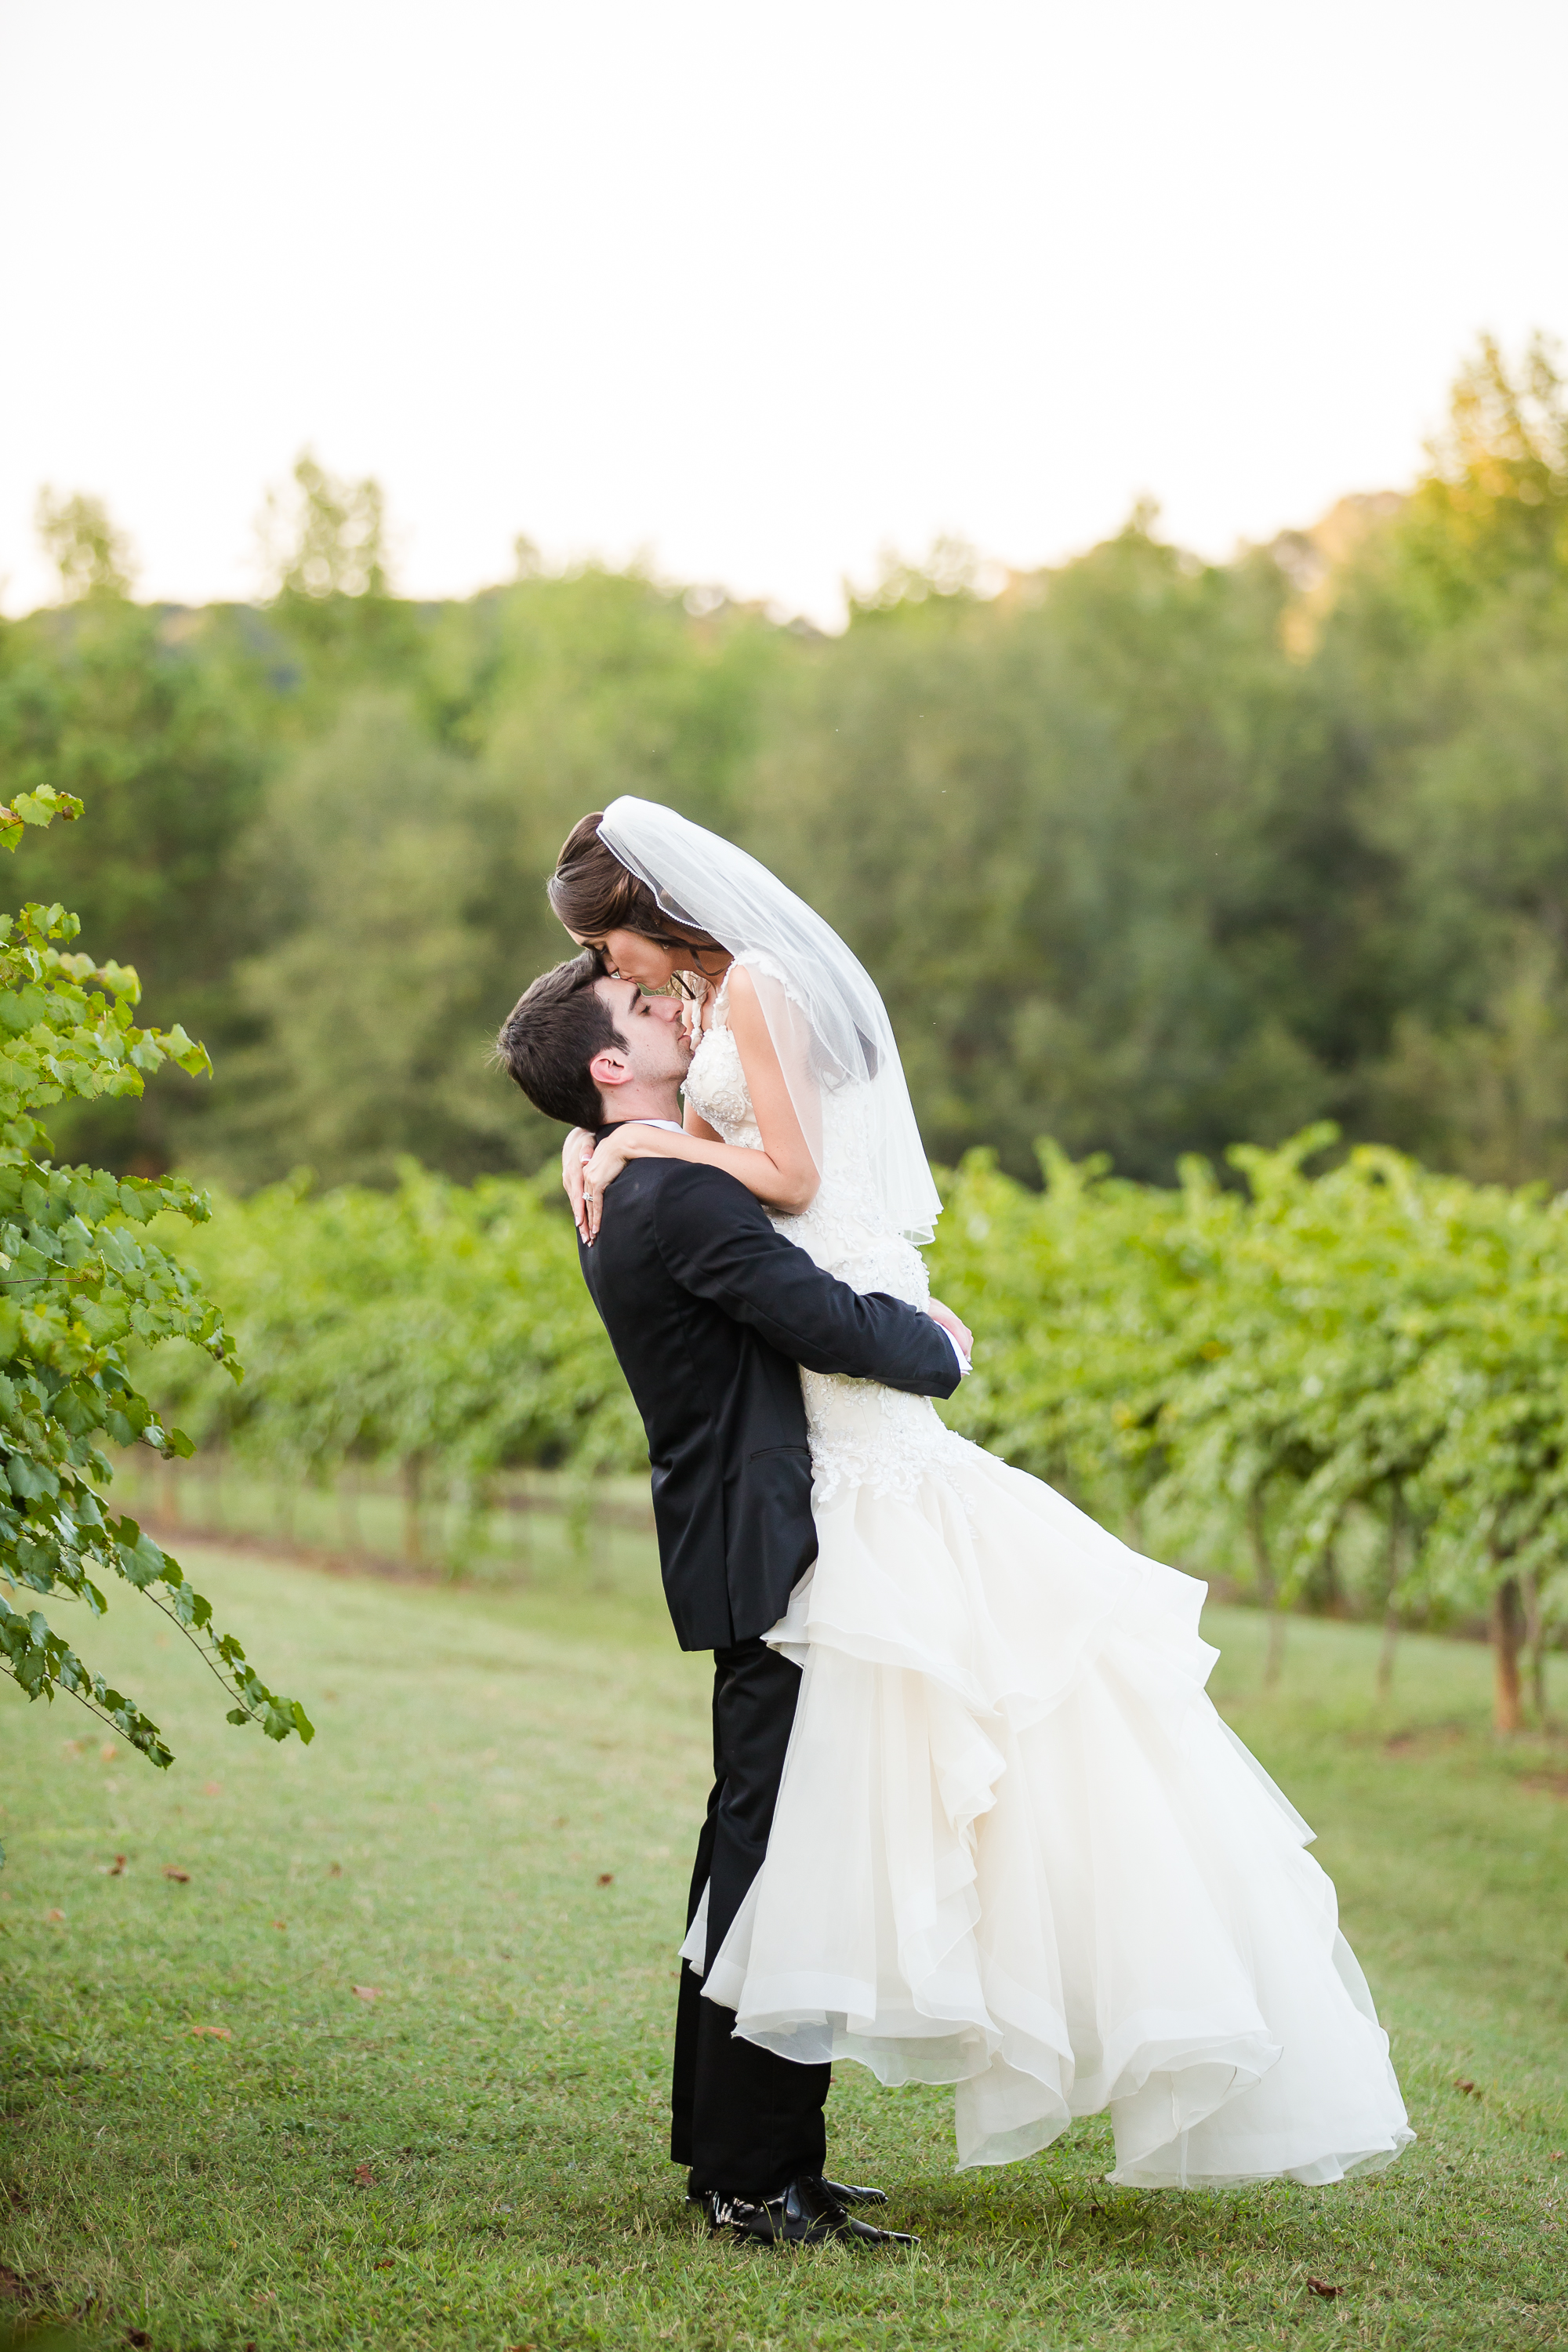 claire-diana-photography-farm-high-shoals-wedding-66-2